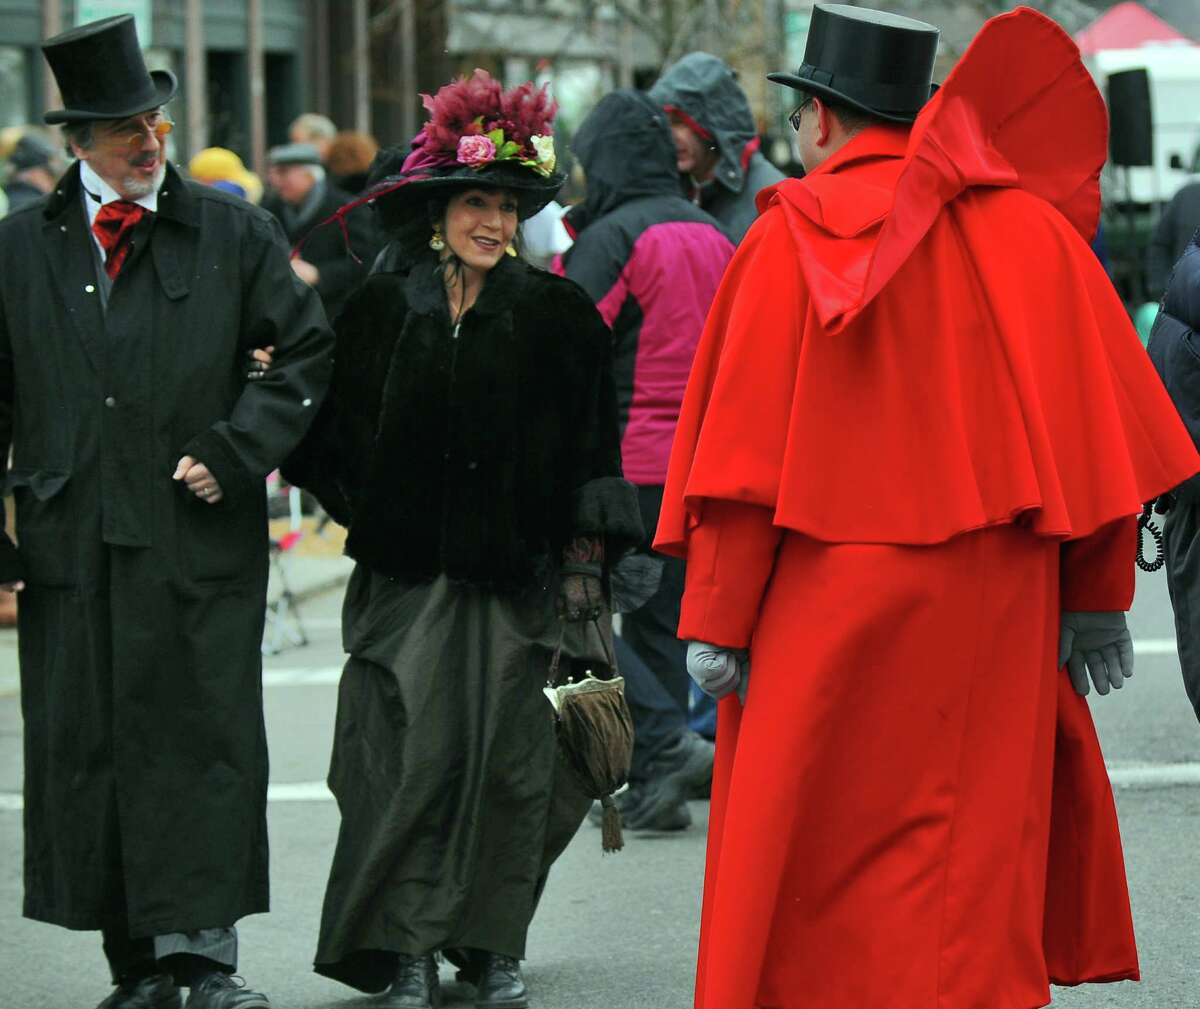 Frank and Maria Hadley of Long Valley, NJ, greet Troy Mayor Harry Tutunjian, right, during the 28th annual Victorian Stroll in Troy, NY on Sunday December 5, 2010. ( Philip Kamrass / Times Union )